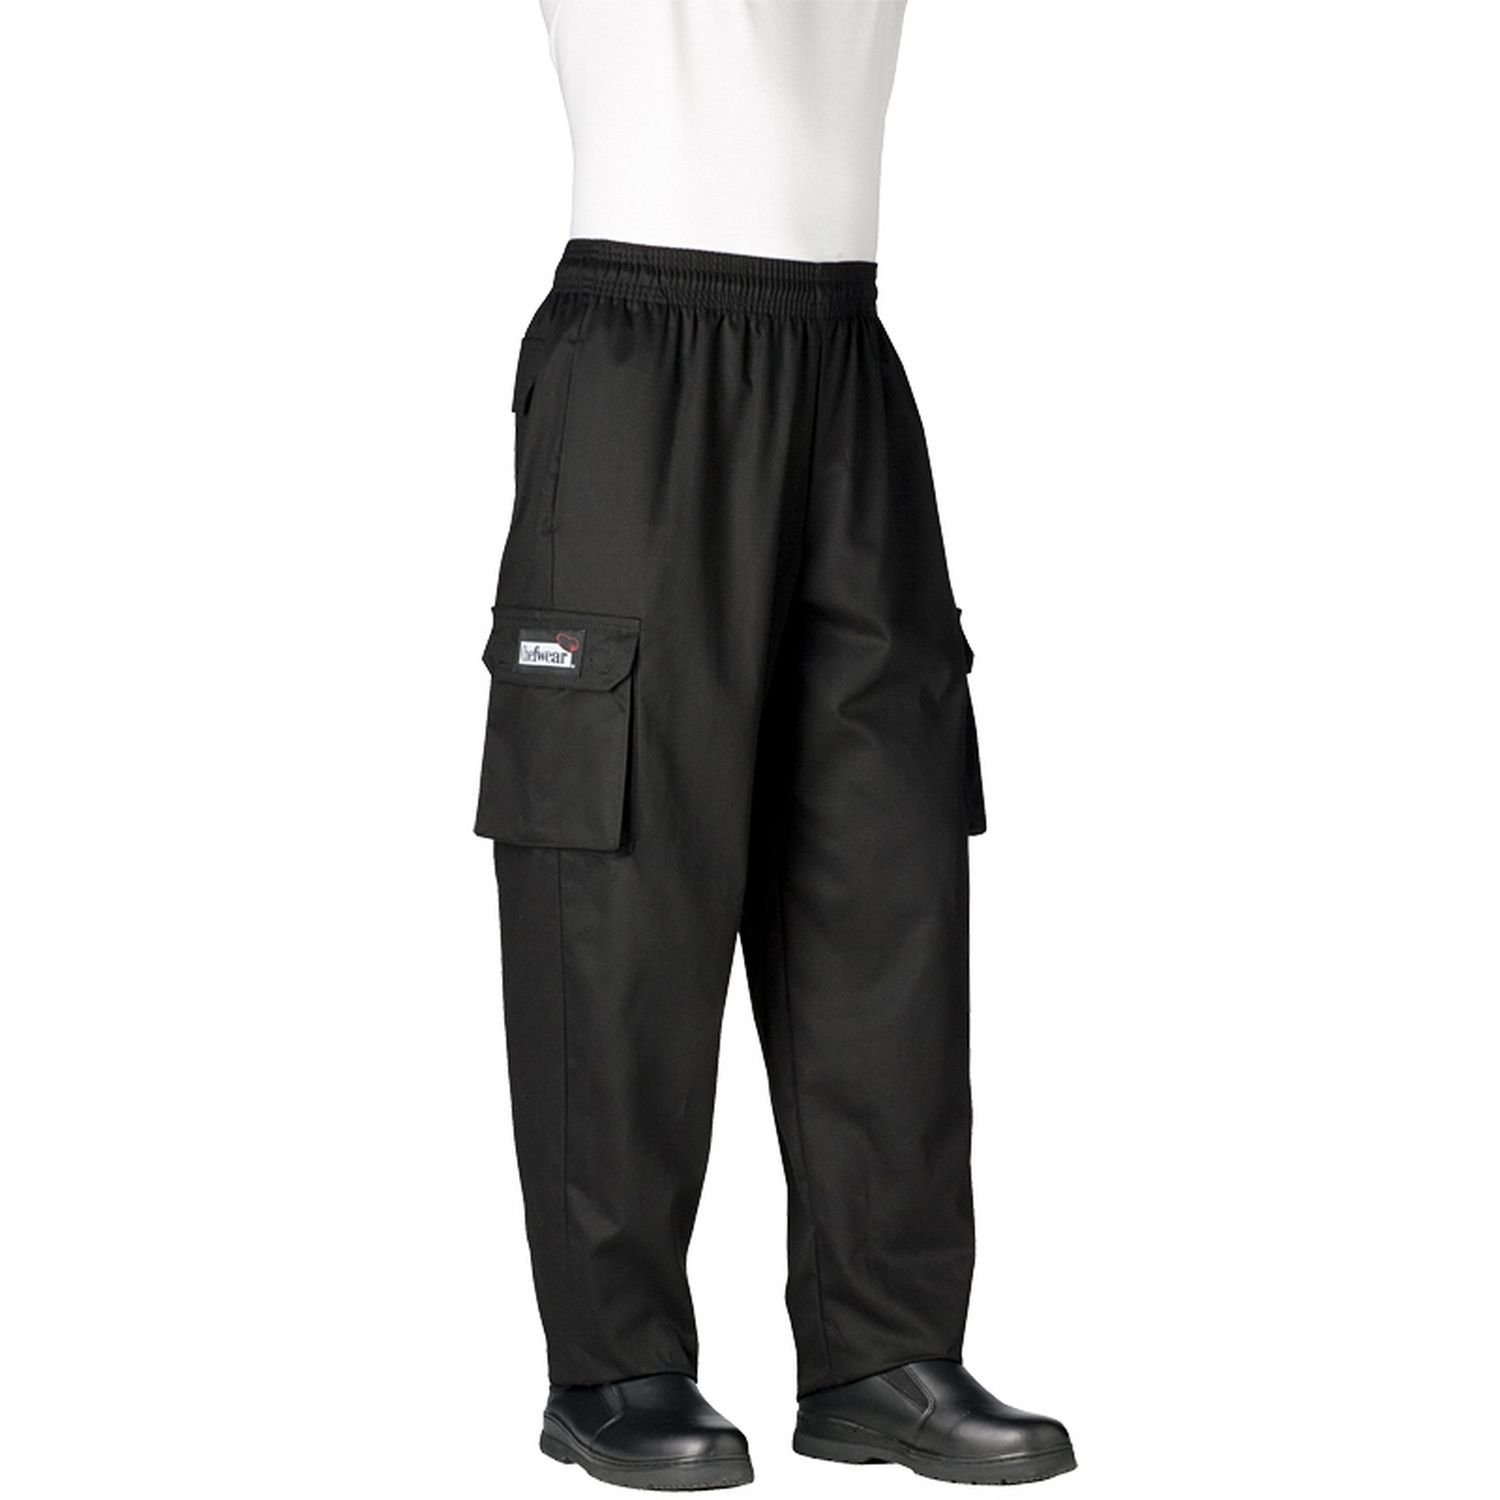 Chefwear Men's Unisex Cargo Cotton Chef Pant, Black, Small by Chefwear